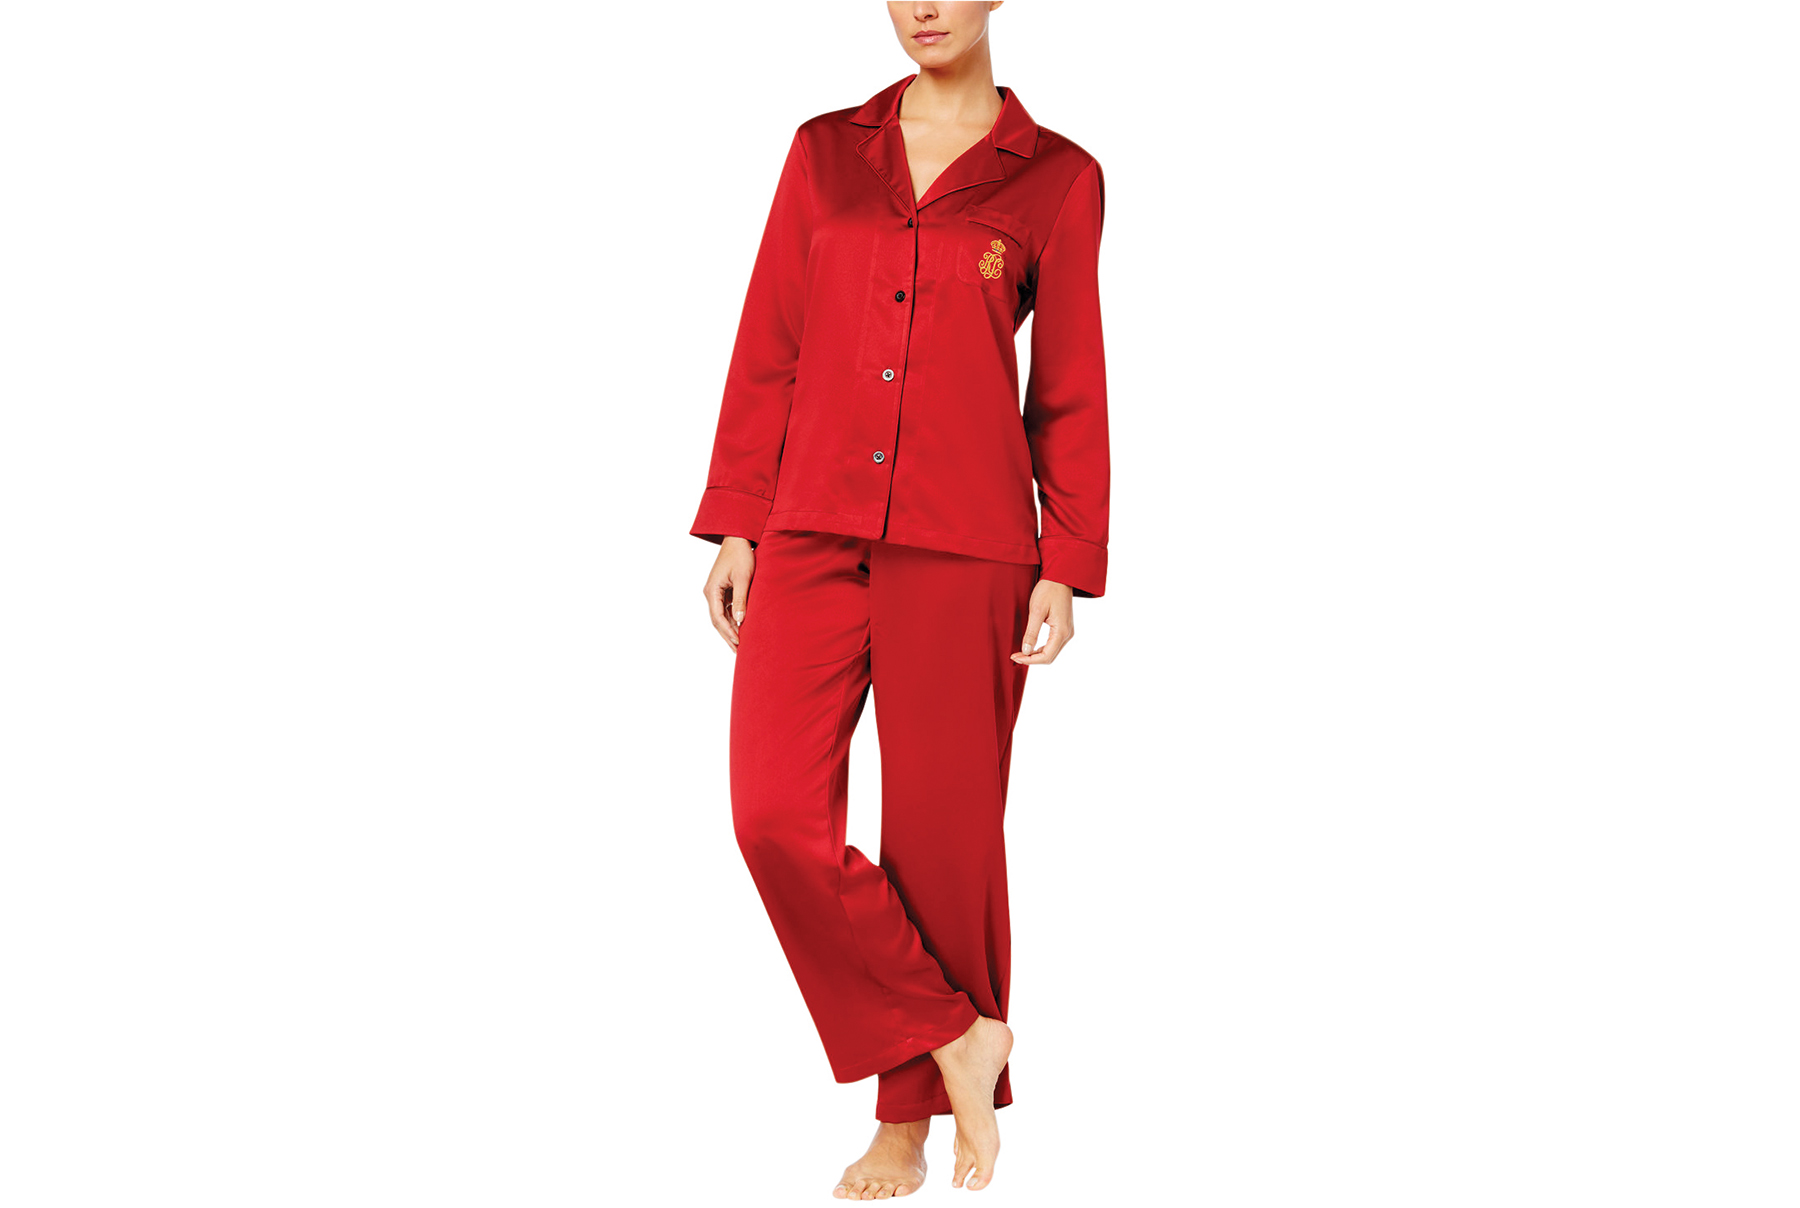 Ralph Lauren Satin Pajama Set in Red